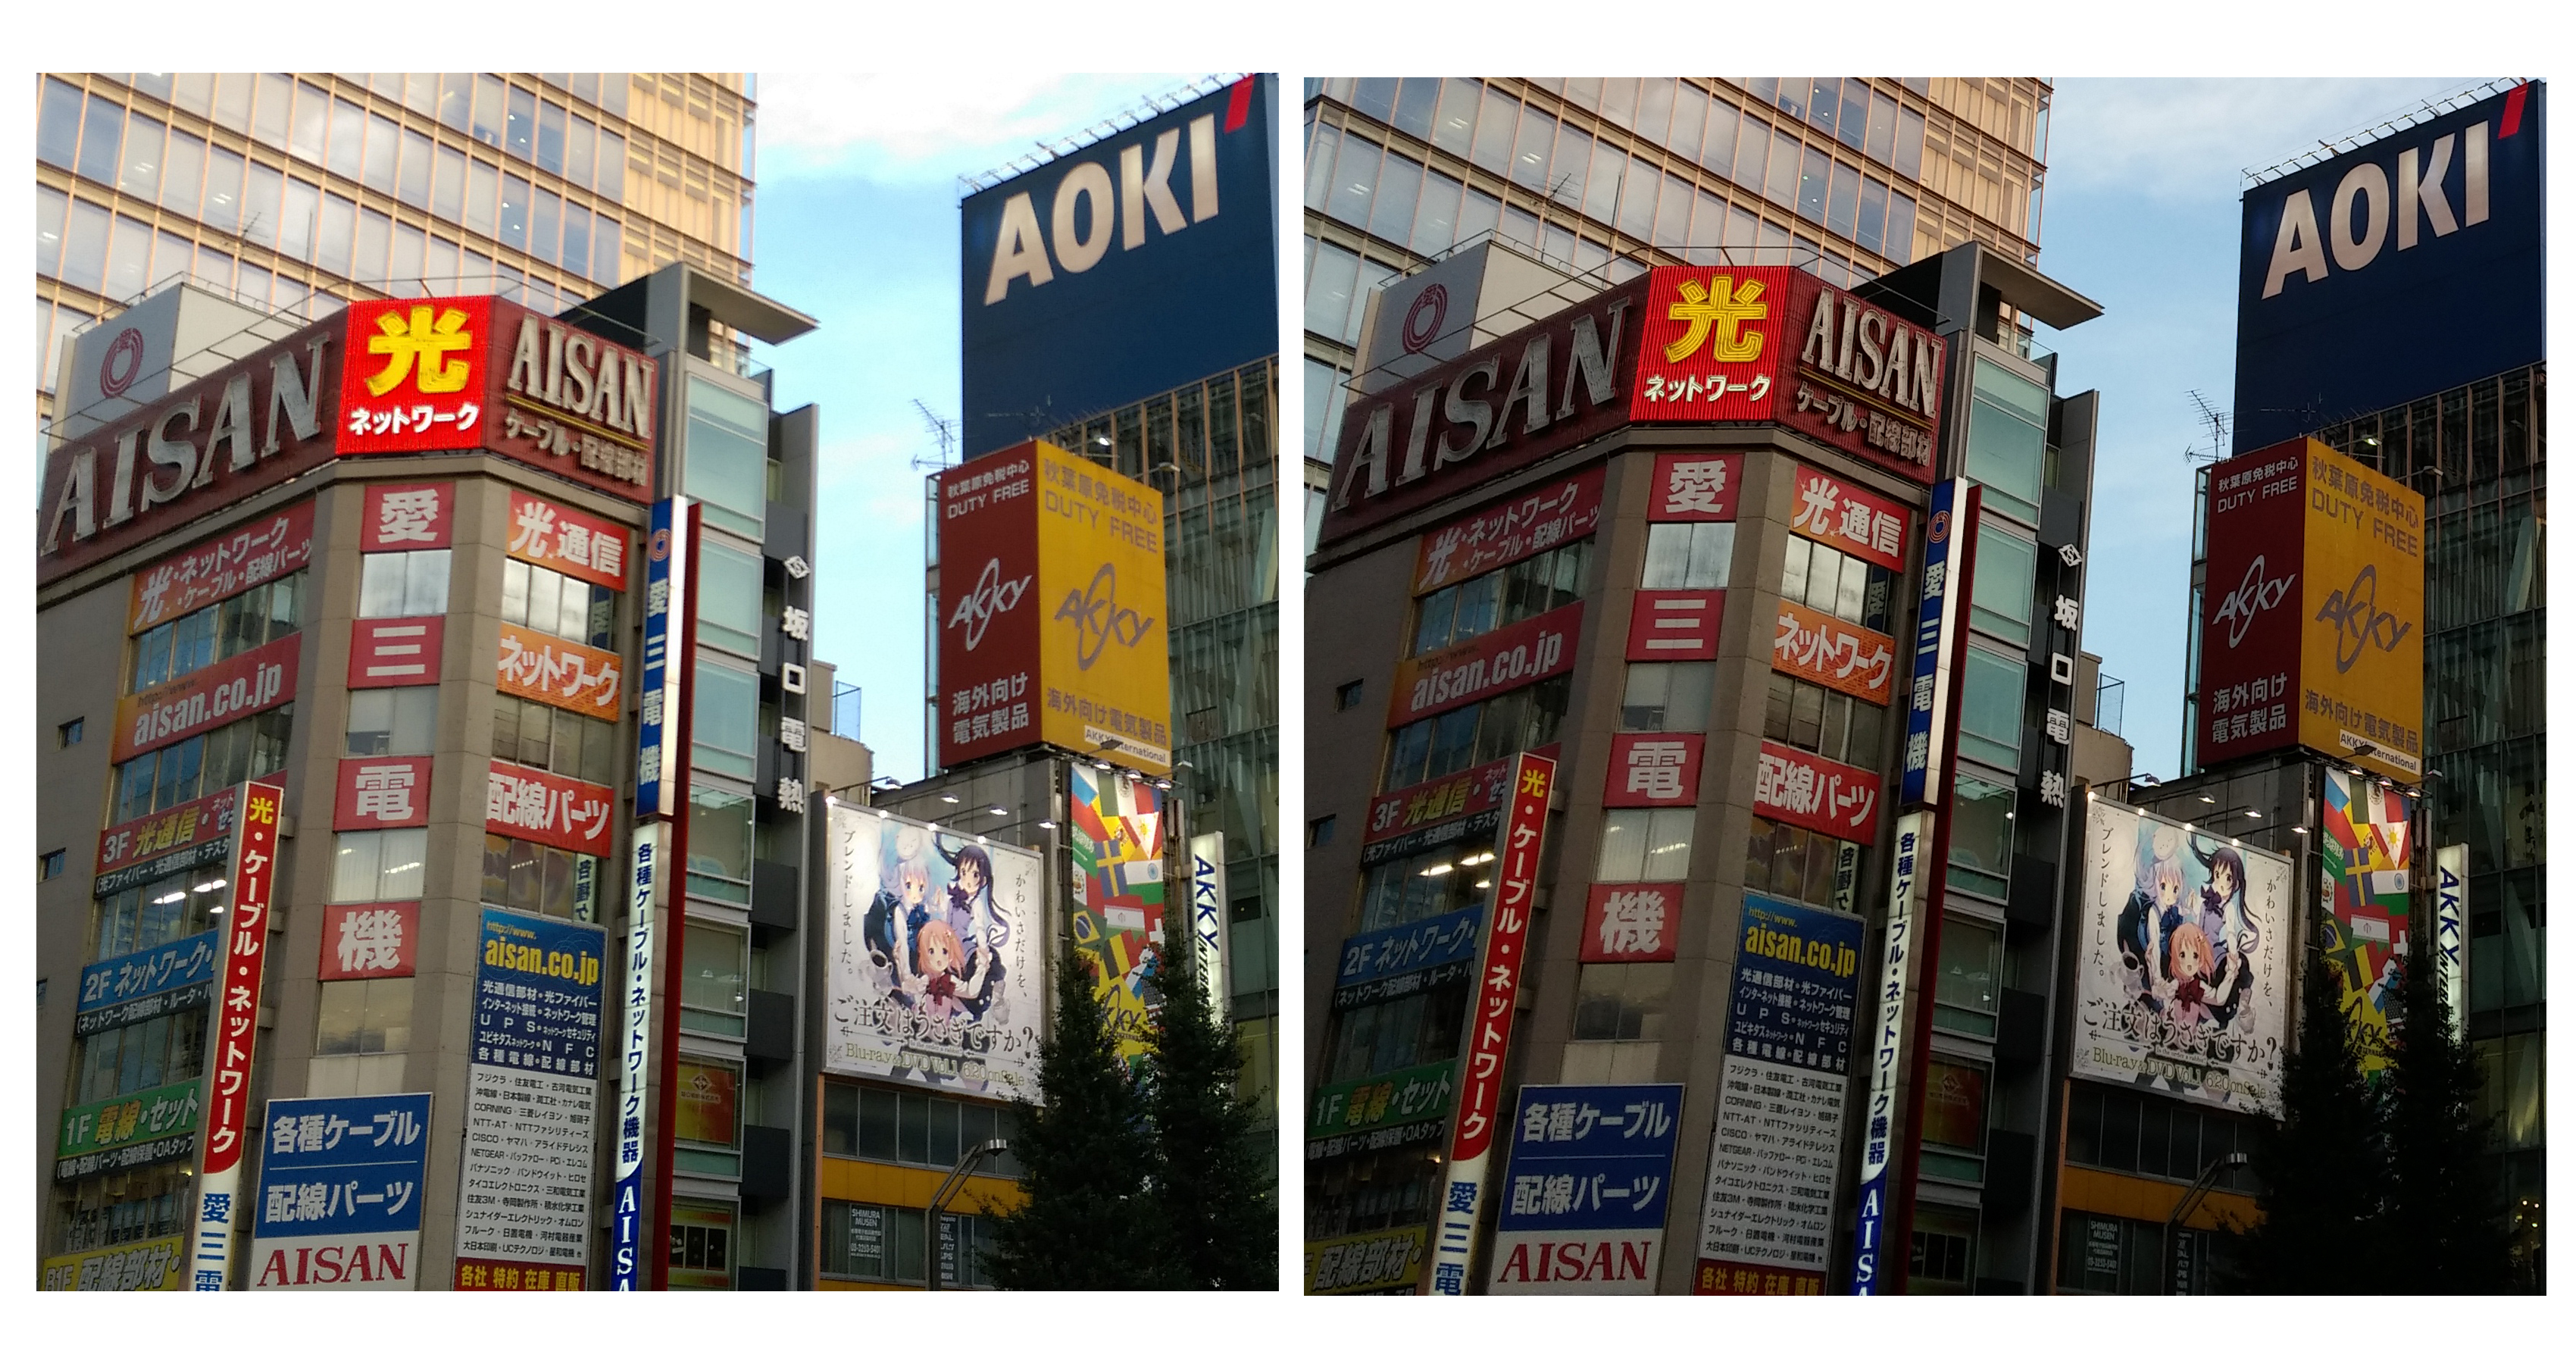 Left: HTC Butterfly 2. Right: LG G3. <br> The Butterfly 2 seems to take photos with a lighter tone as evident in the AOKI billboard on the right side. Photos also tend to be less sharp compared to the LG G3.